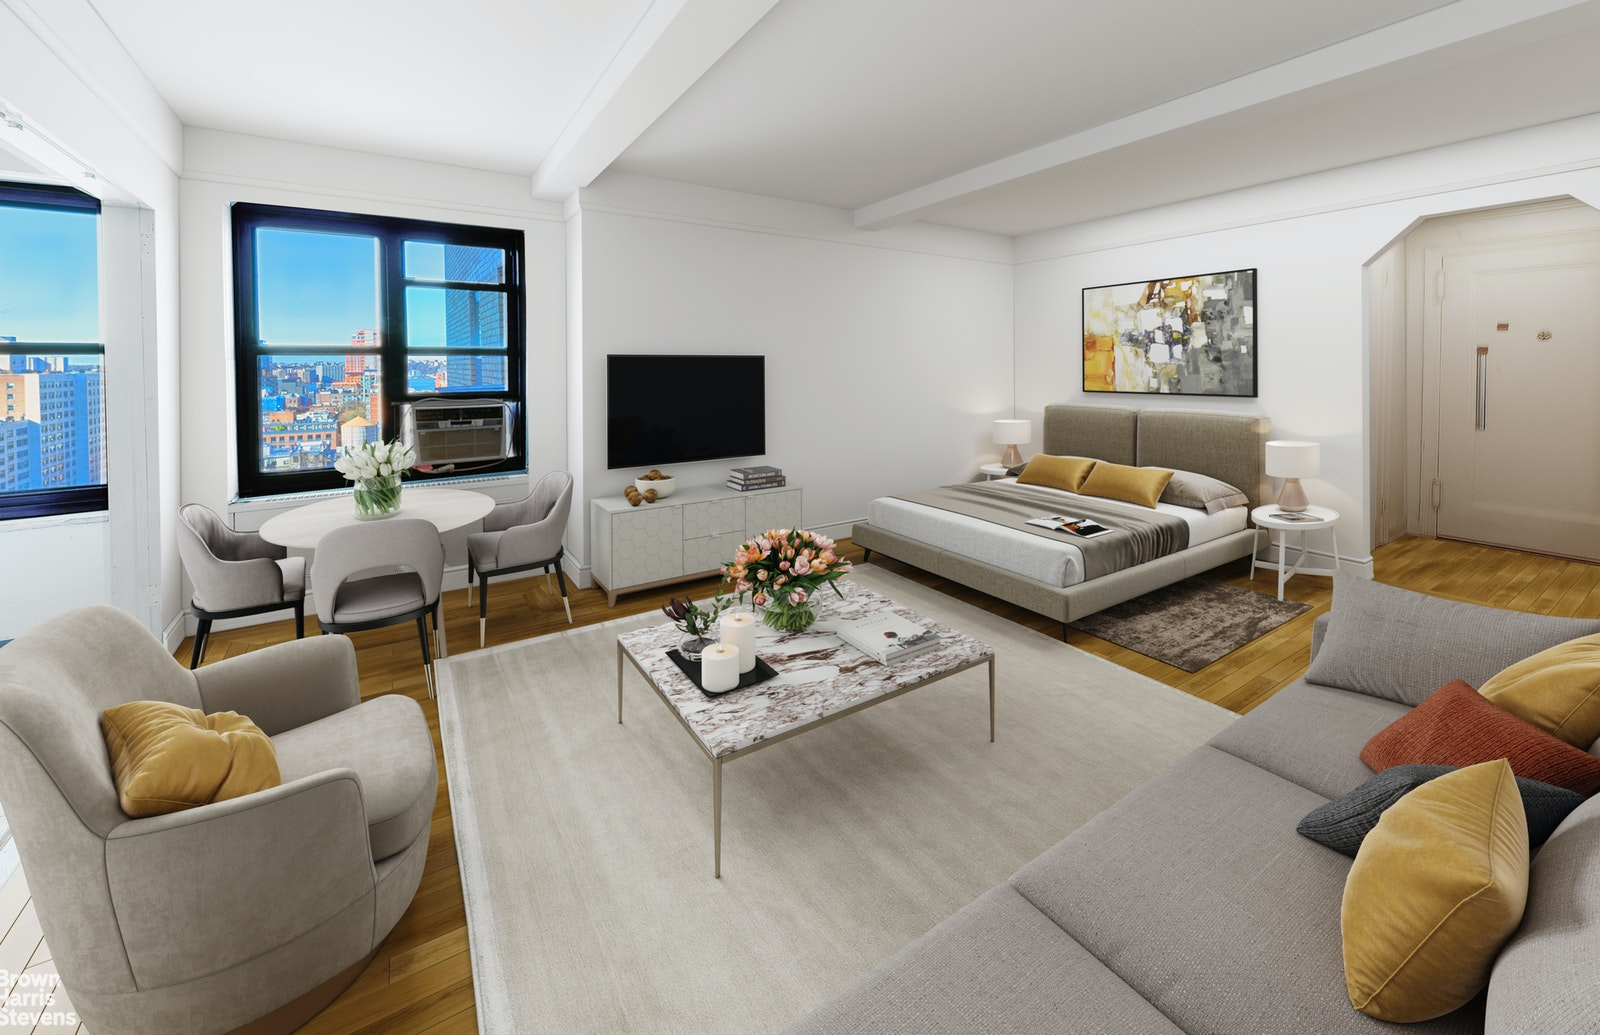 Apartment for sale at 300 West 23rd Street, Apt 16N